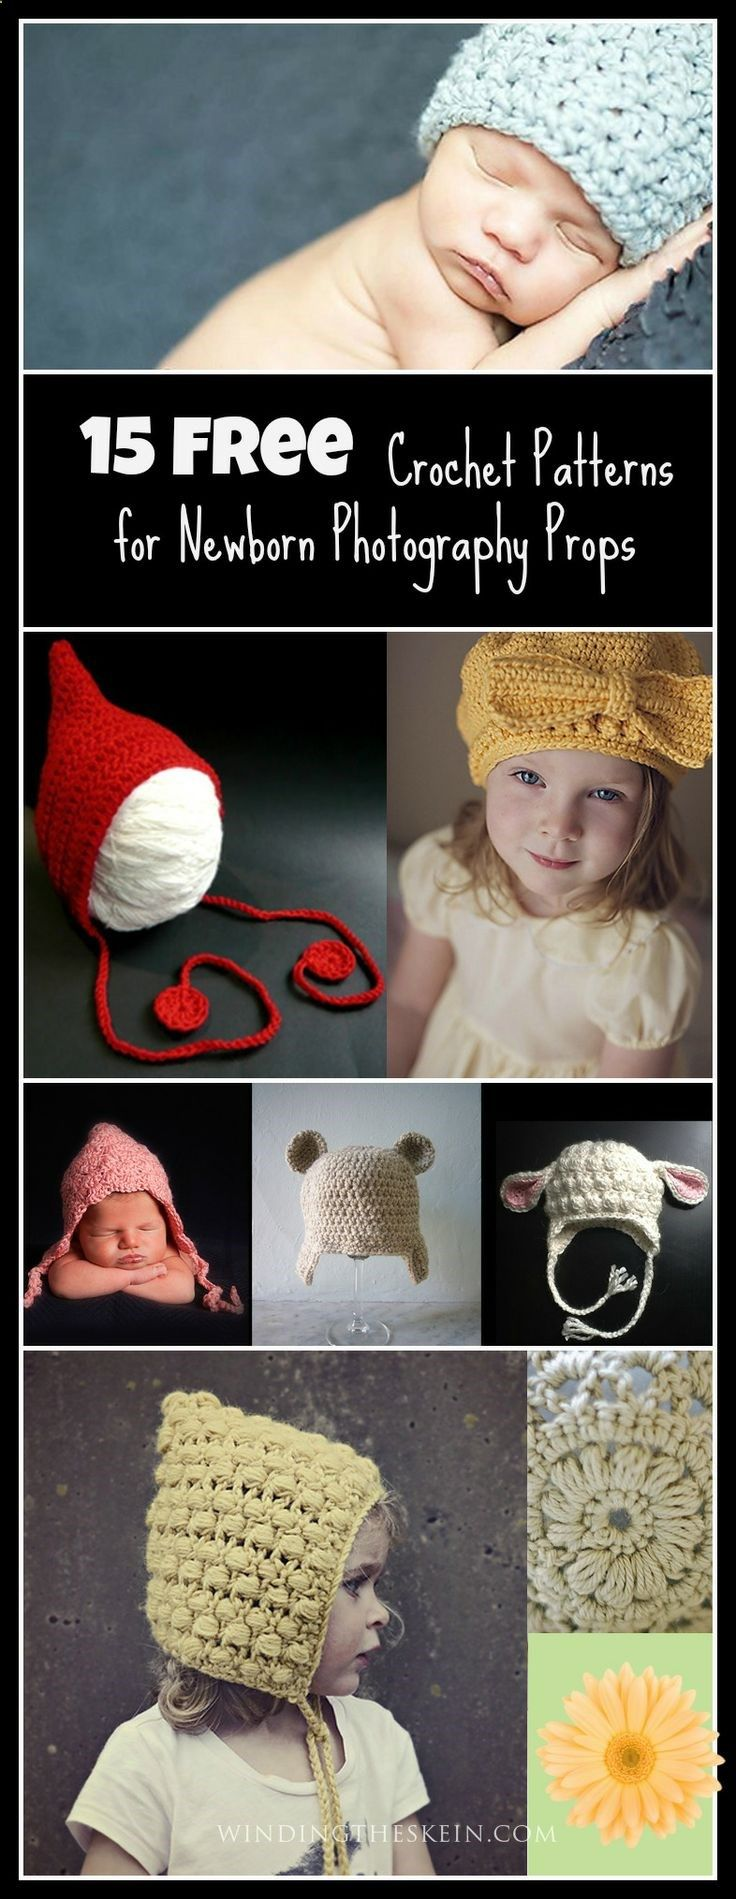 1308859328939637567484 15 Free Crochet Patterns for Newborn Photography Props